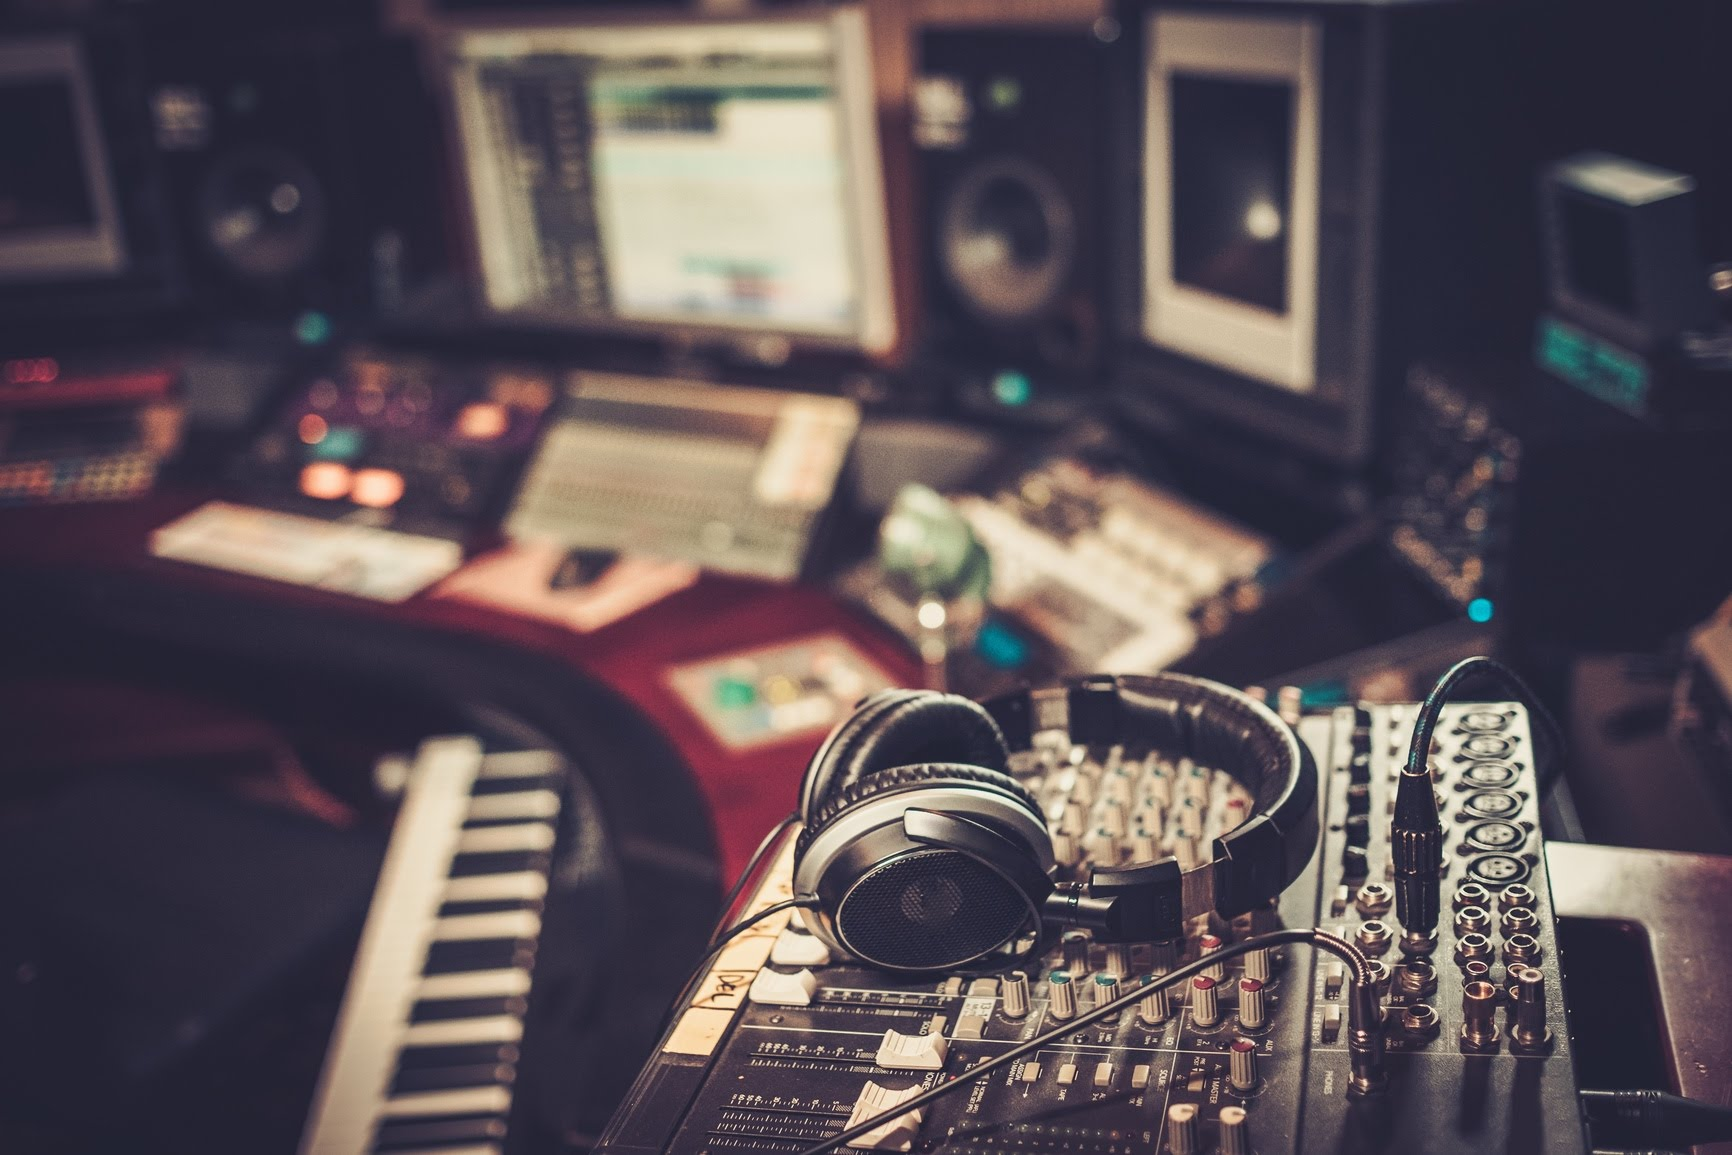 Recording - Recording and production services including songwriting, tracking, mixing, and mastering.